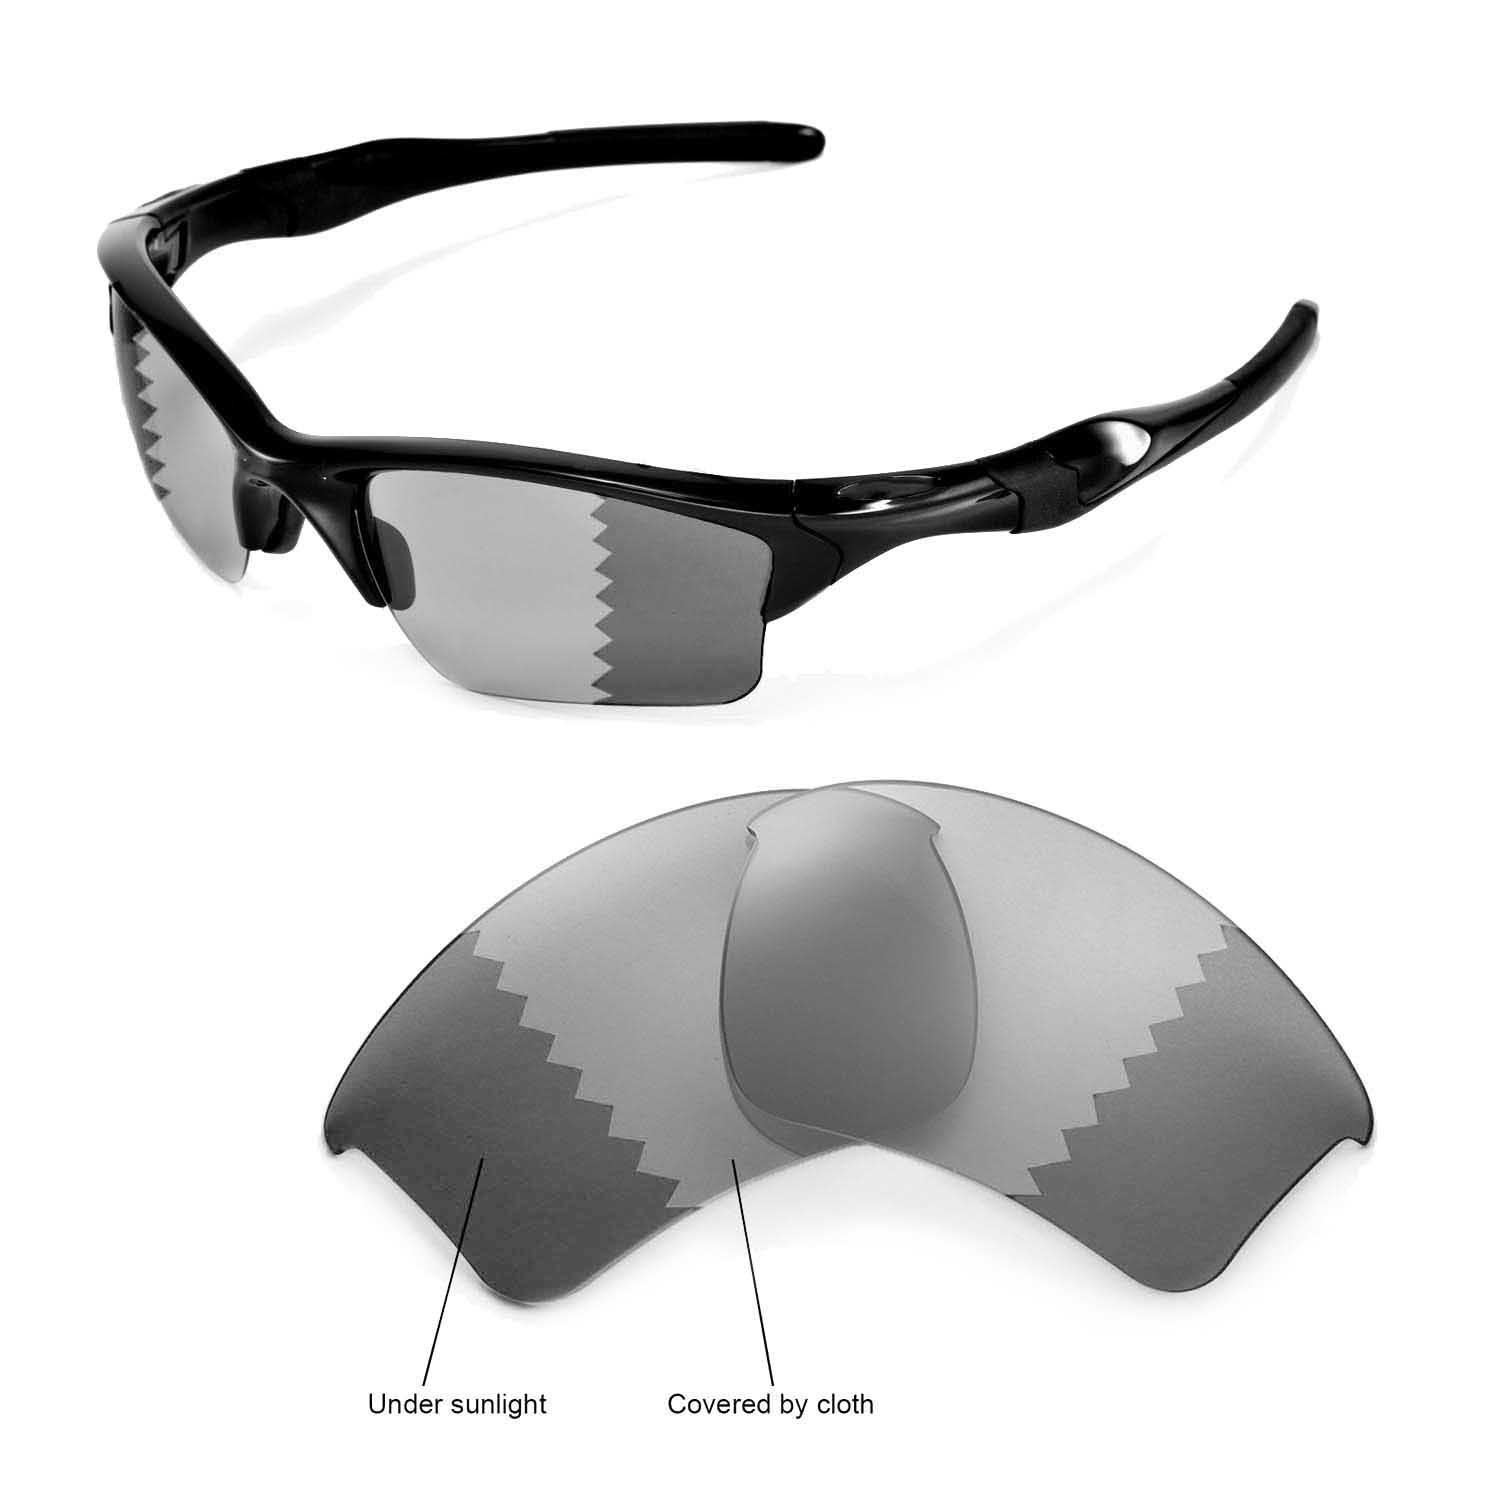 ef78431eec967 Amazon.com  Walleva Replacement Lenses for Oakley Half Jacket 2.0 XL  Sunglasses - Multiple Options Available (Photochromic Transition -  Polarized)  Clothing